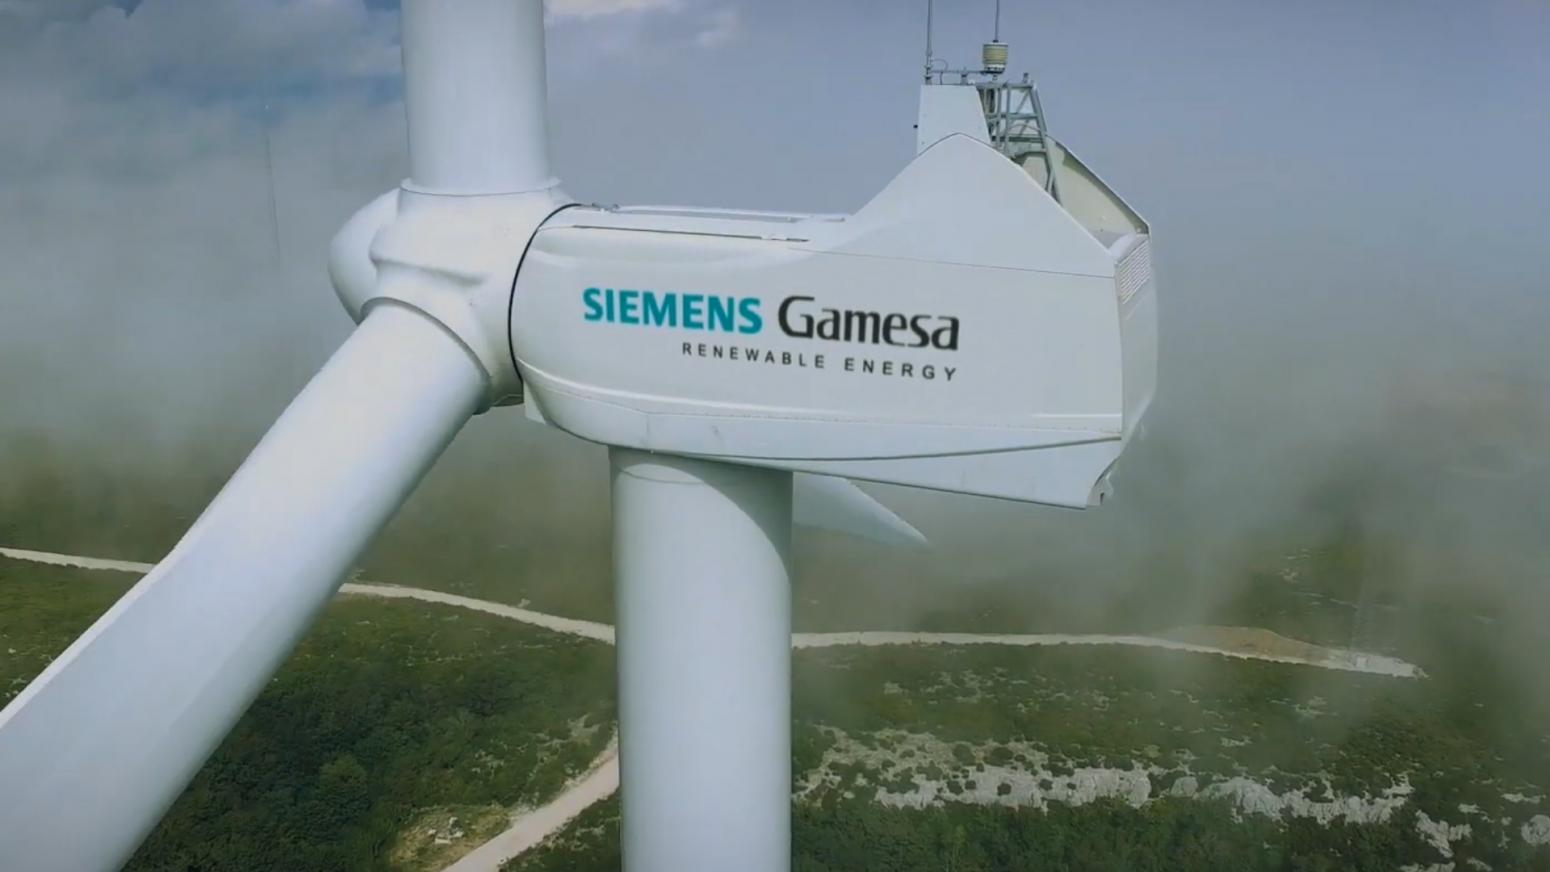 Siemens Gamesa Beneficio video